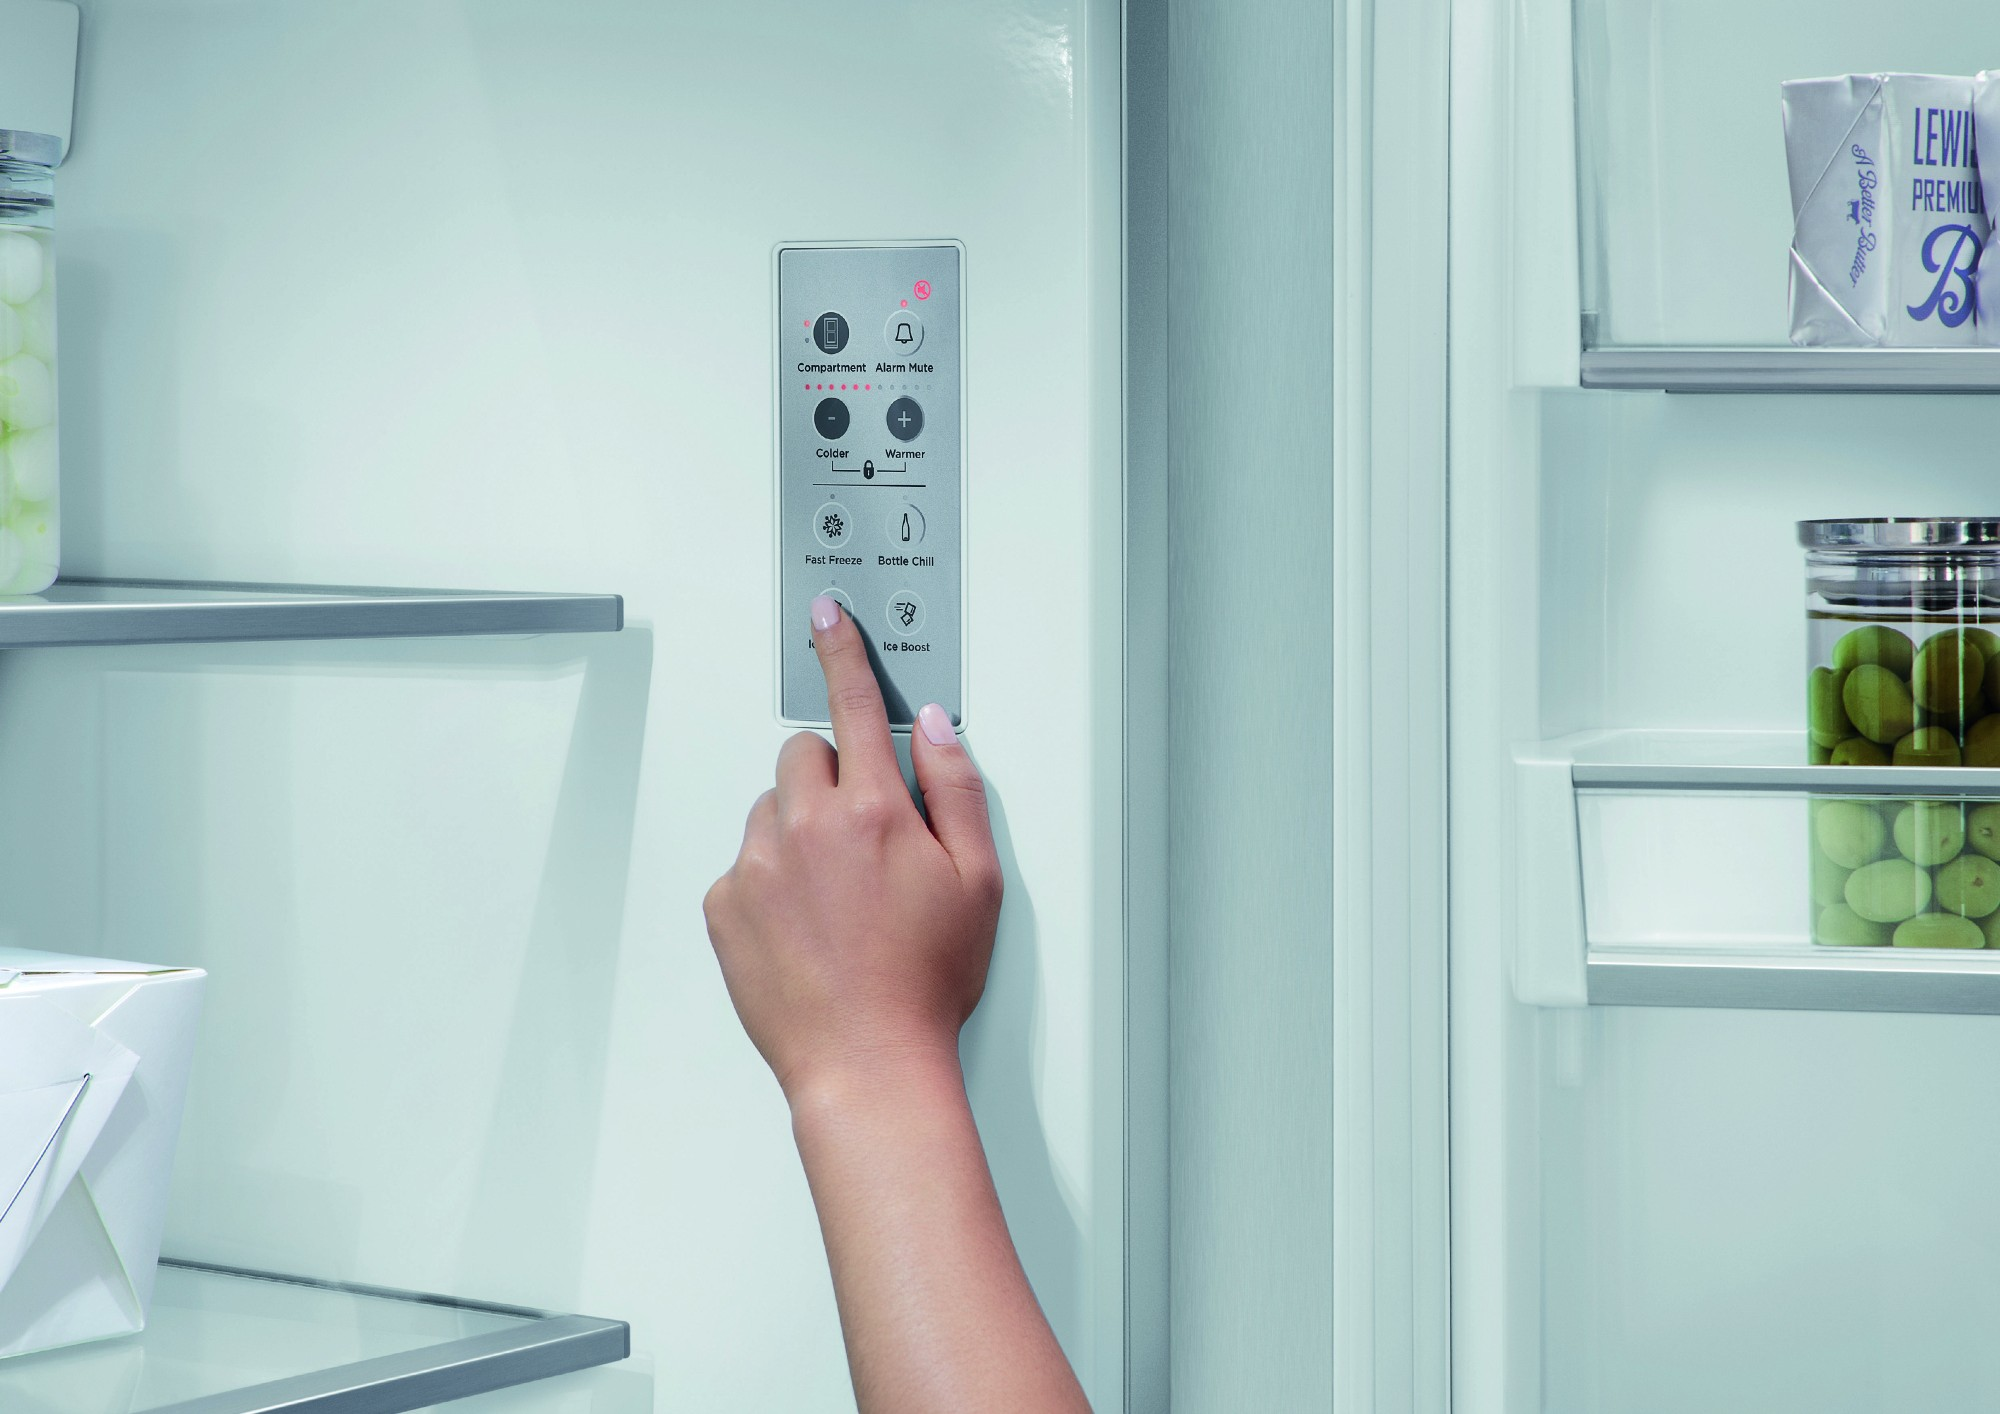 RS36A72J1N | Fisher Paykel 36"|2000|1414|?|en|2|58d23aa79bd74ca4a7b0ba115ef62eab|False|UNLIKELY|0.2992050051689148